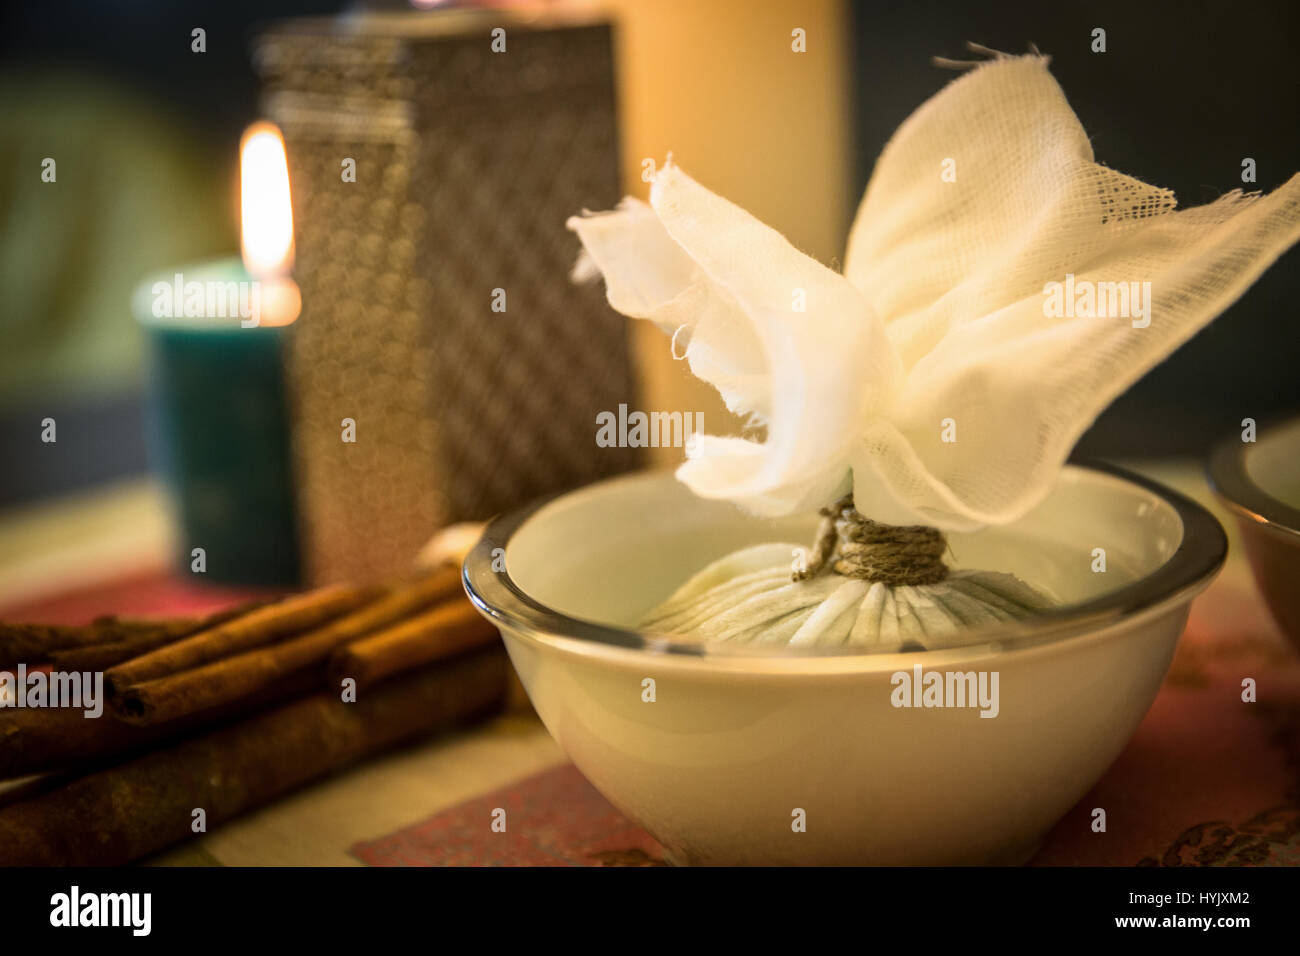 Bags herbal for massages - Stock Image